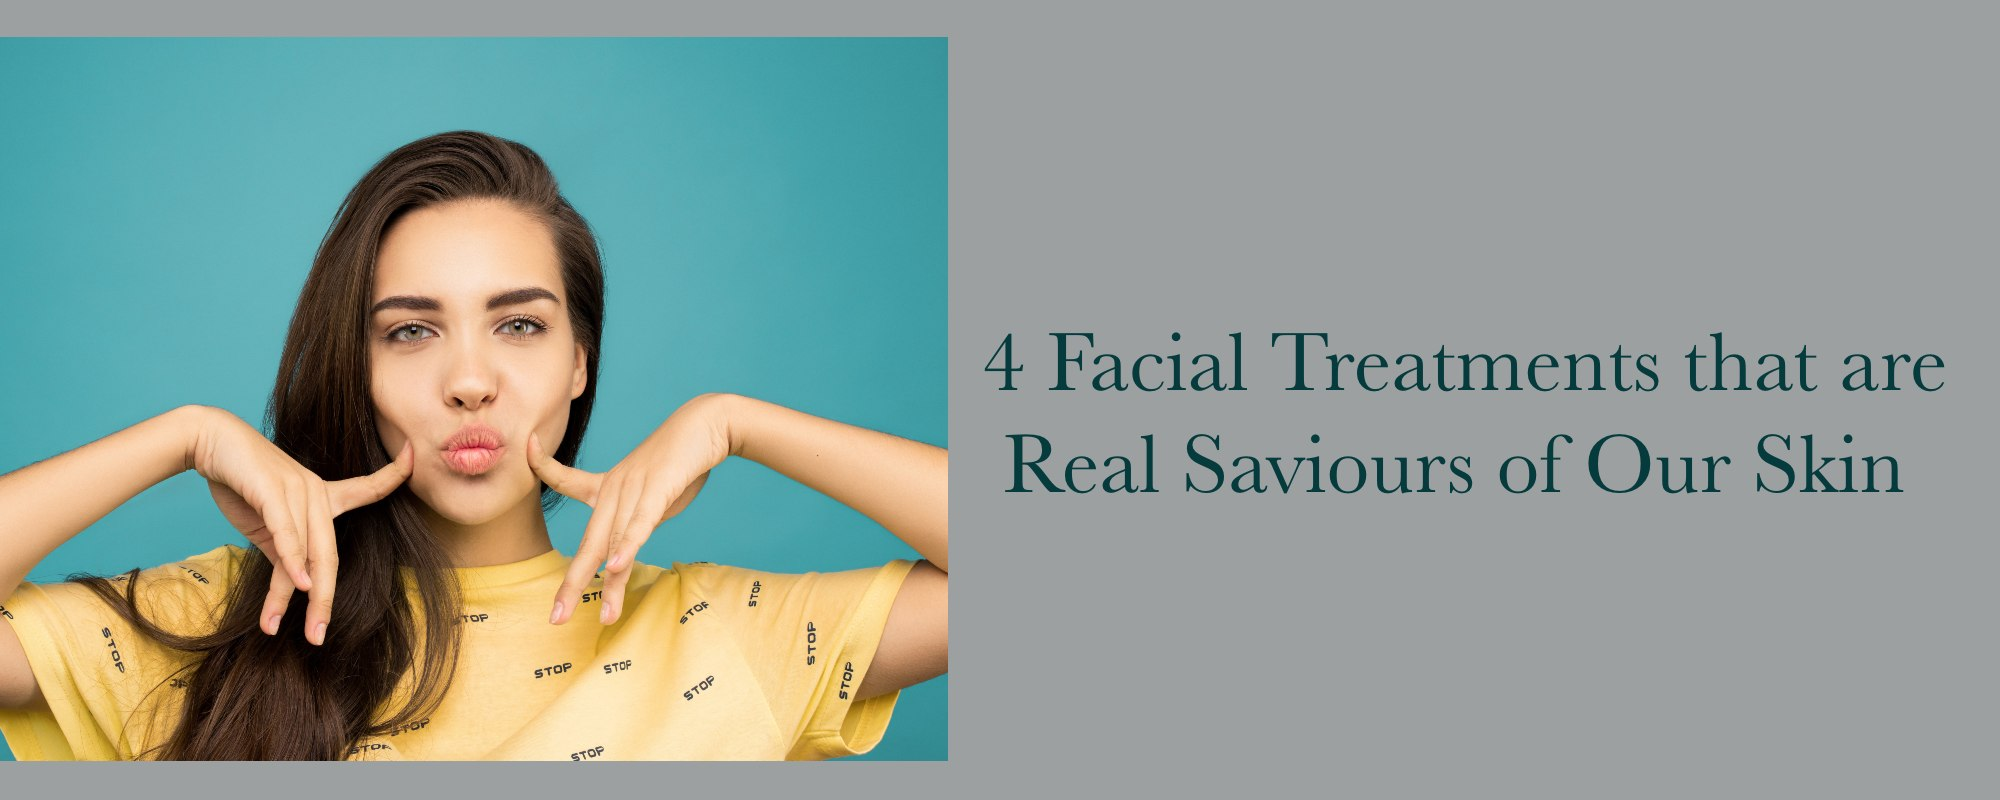 4 Facial Treatments Best for Skin